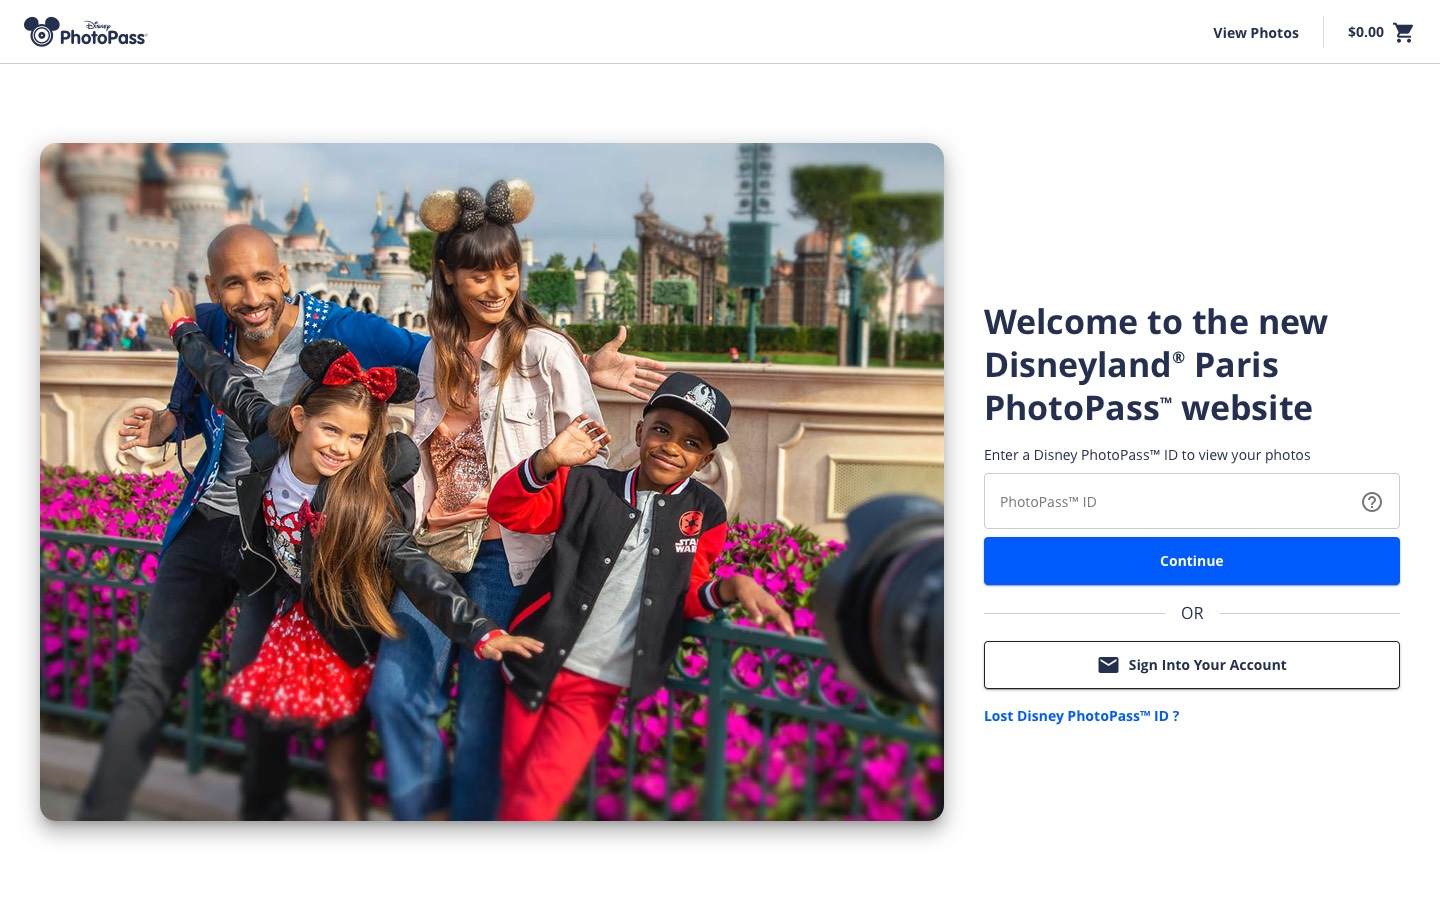 A screenshot of the Disneyland Paris website home page showing a sign in form and a photo of a family getting their picture taken at the park.